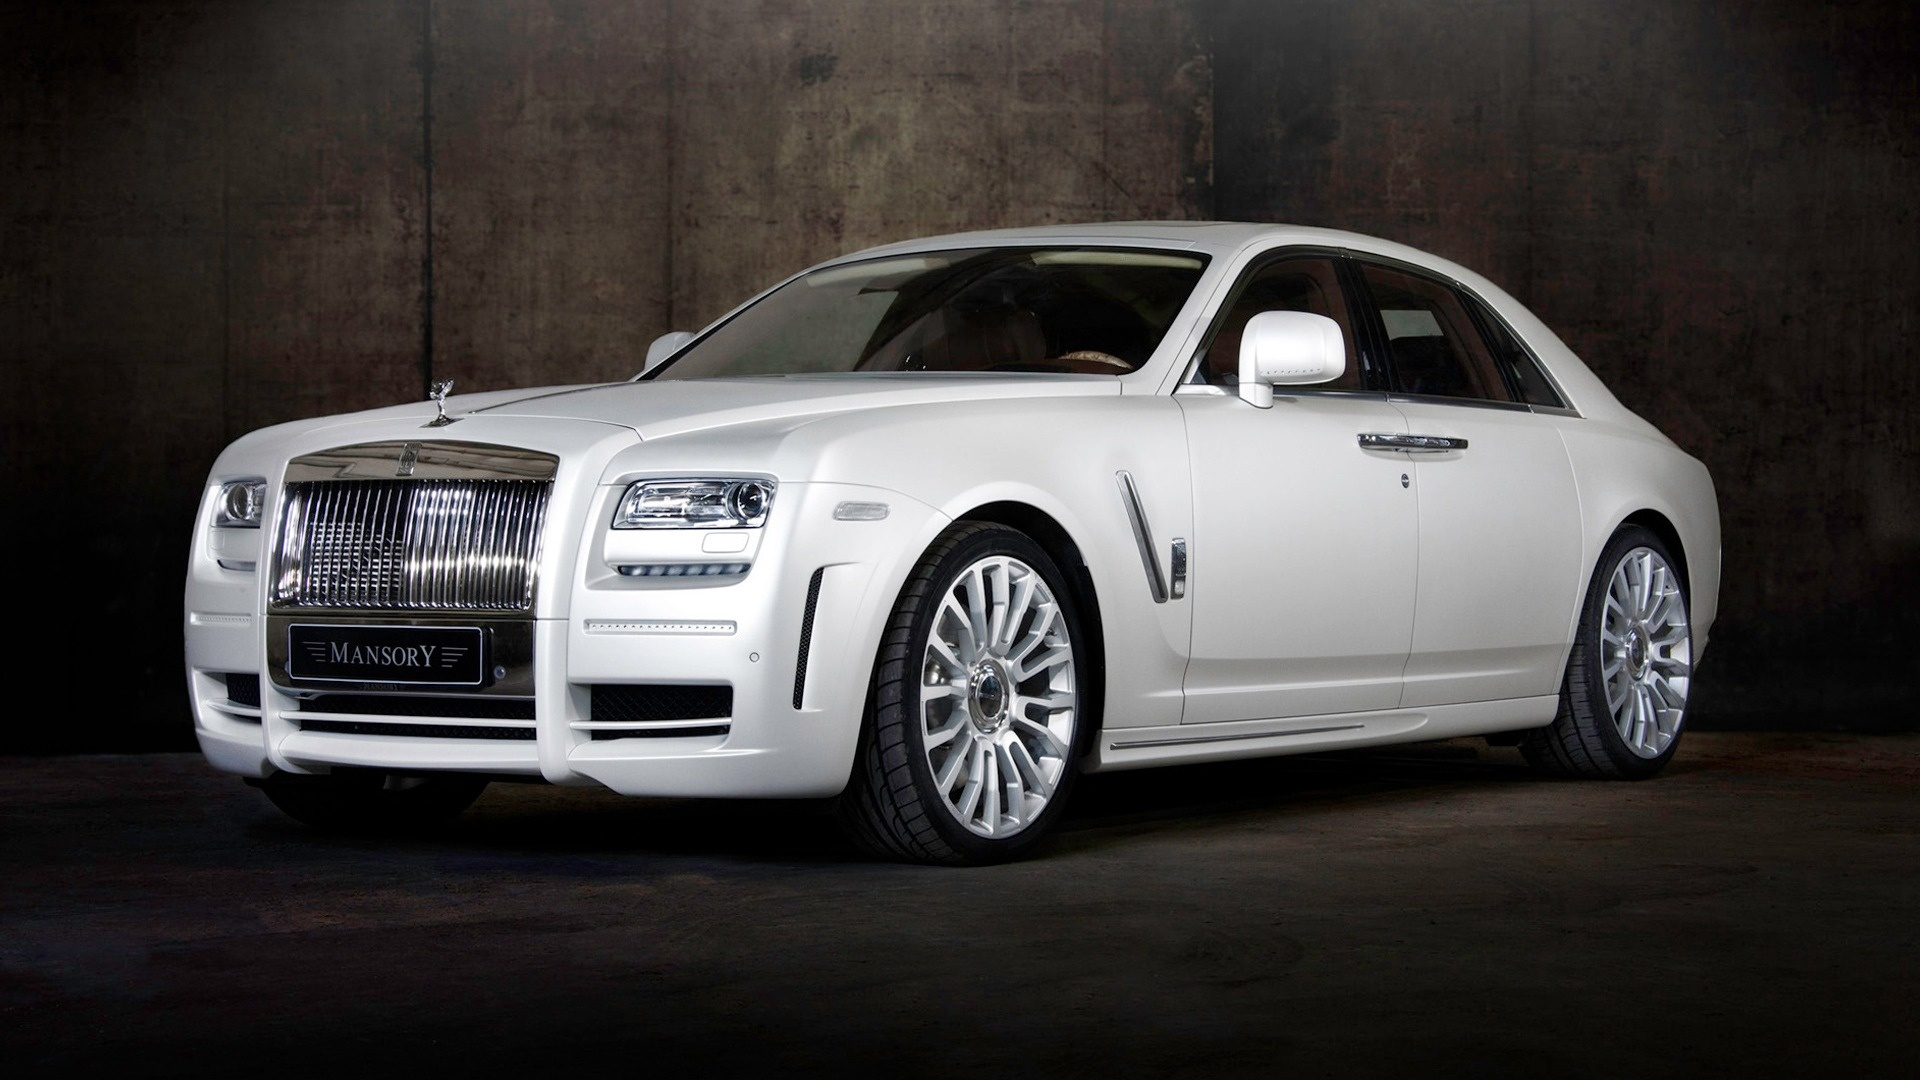 2014 Rolls royce Ghost #23